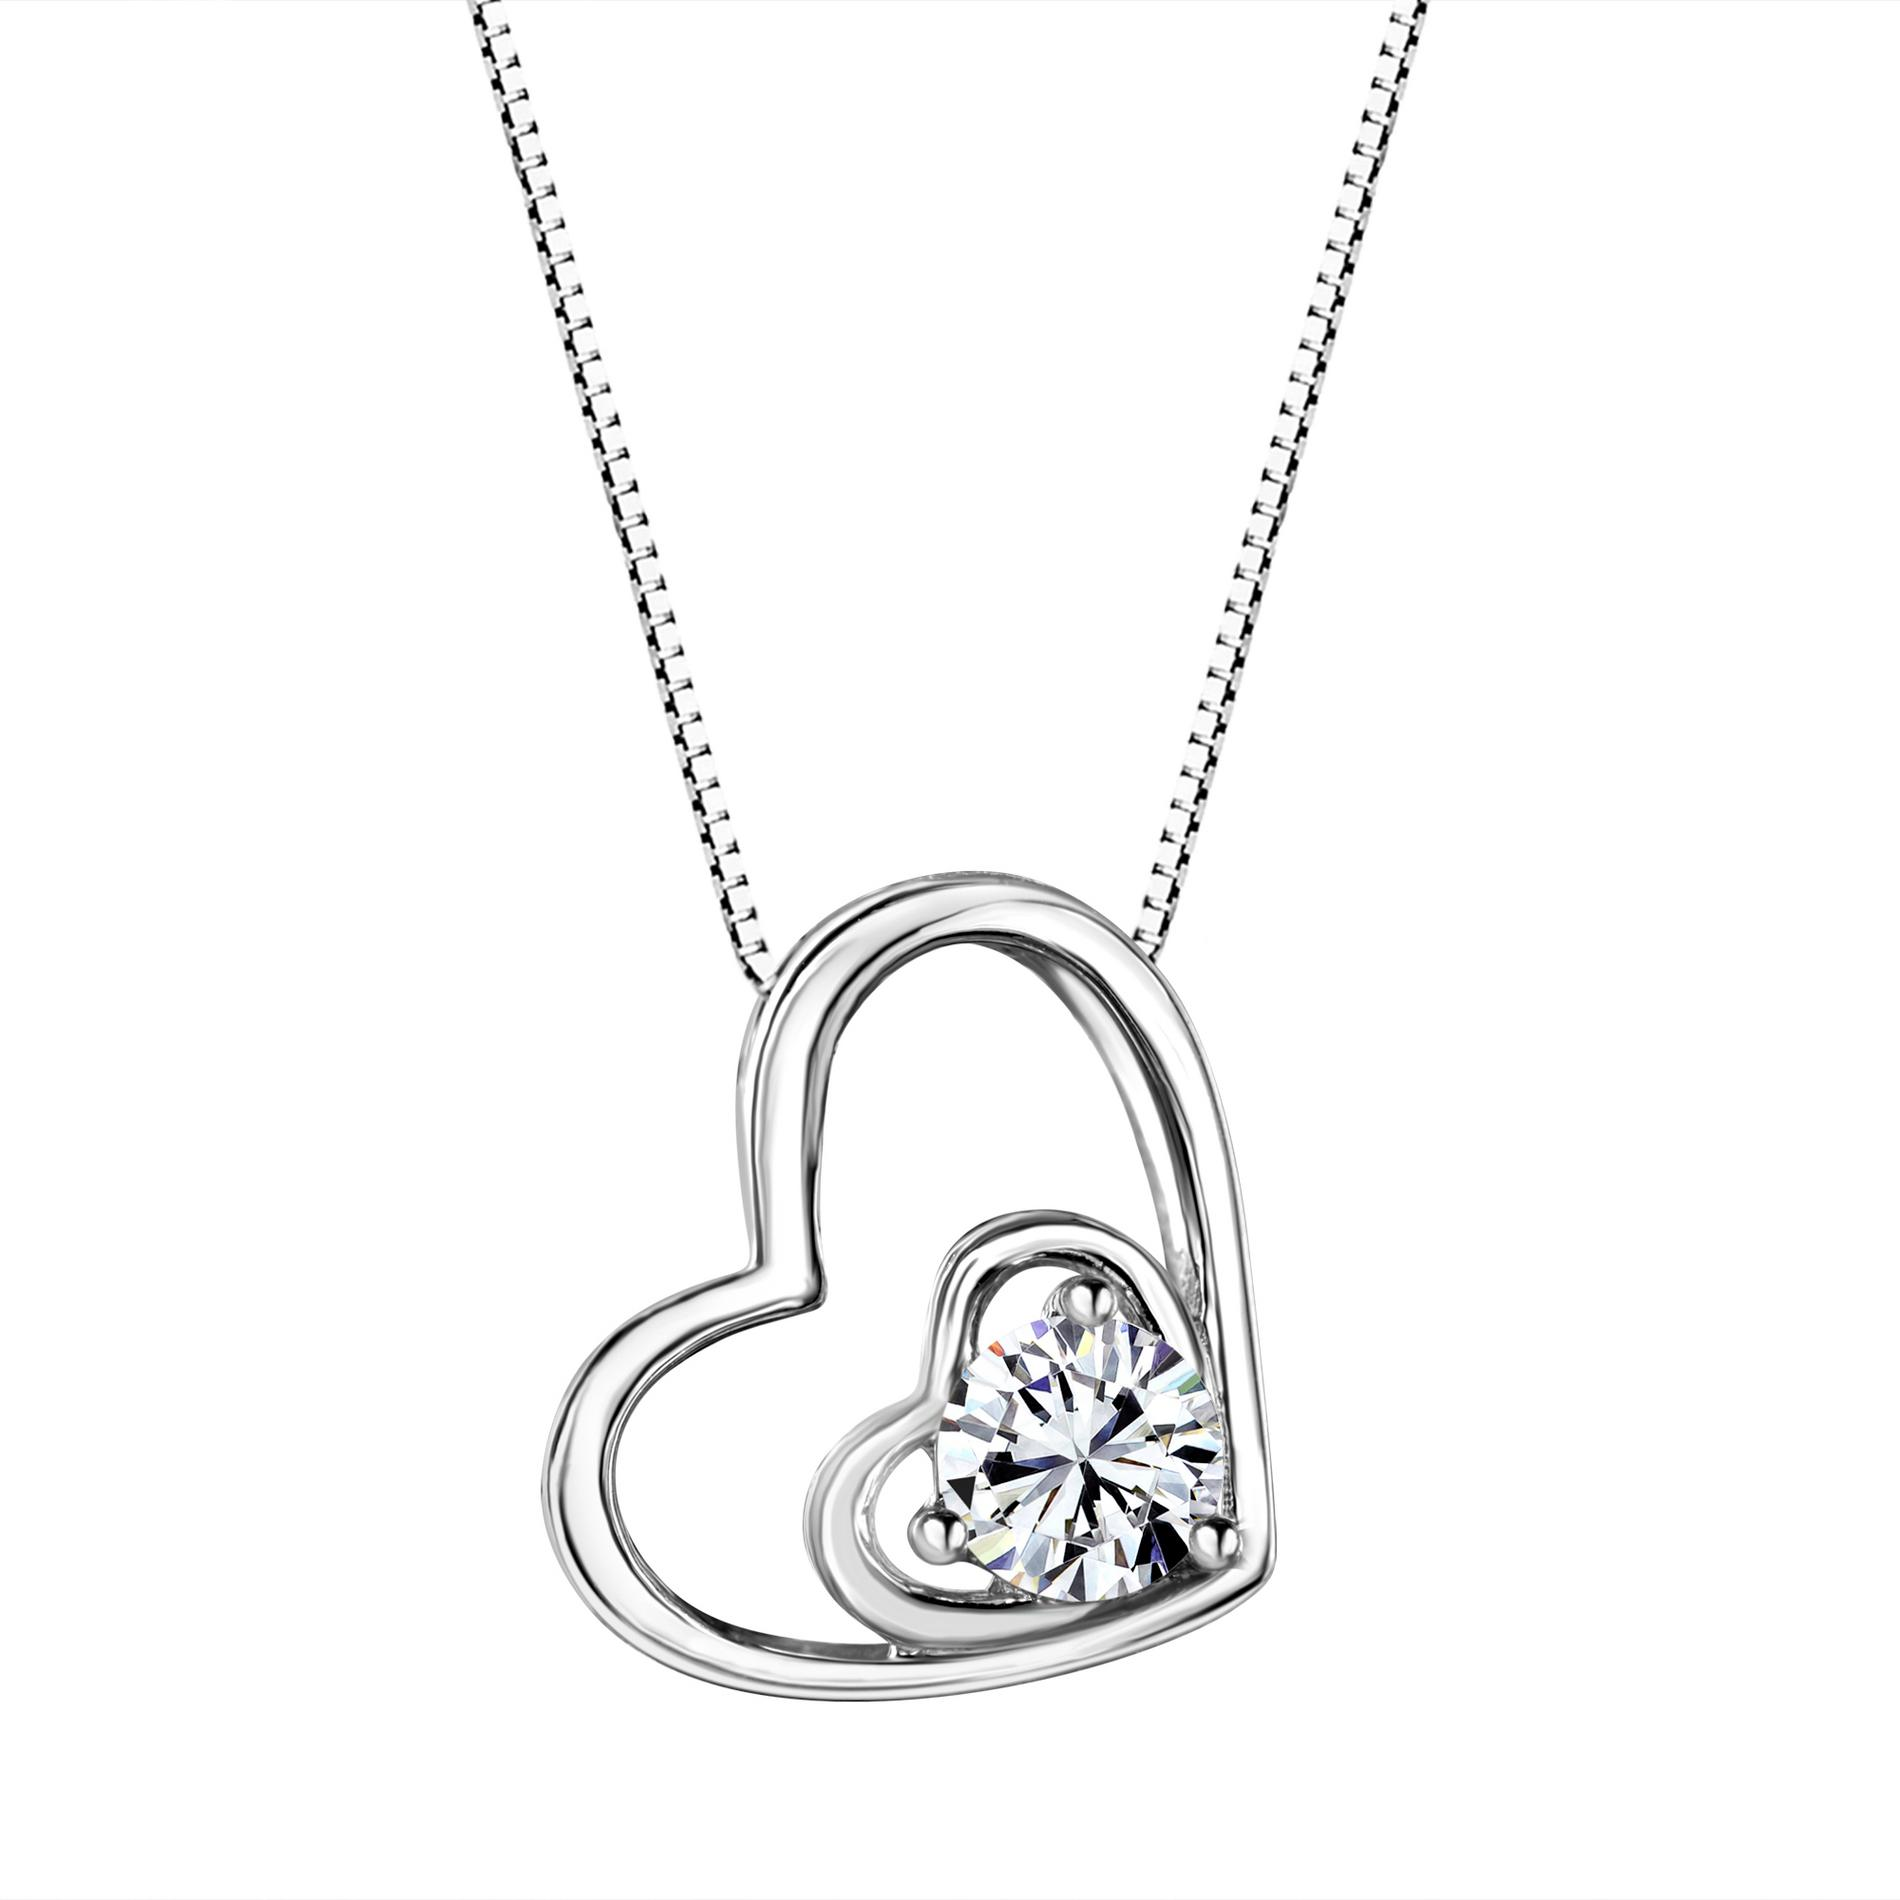 Sterling Silver Heart Shaped Pendant Made with Swarovski